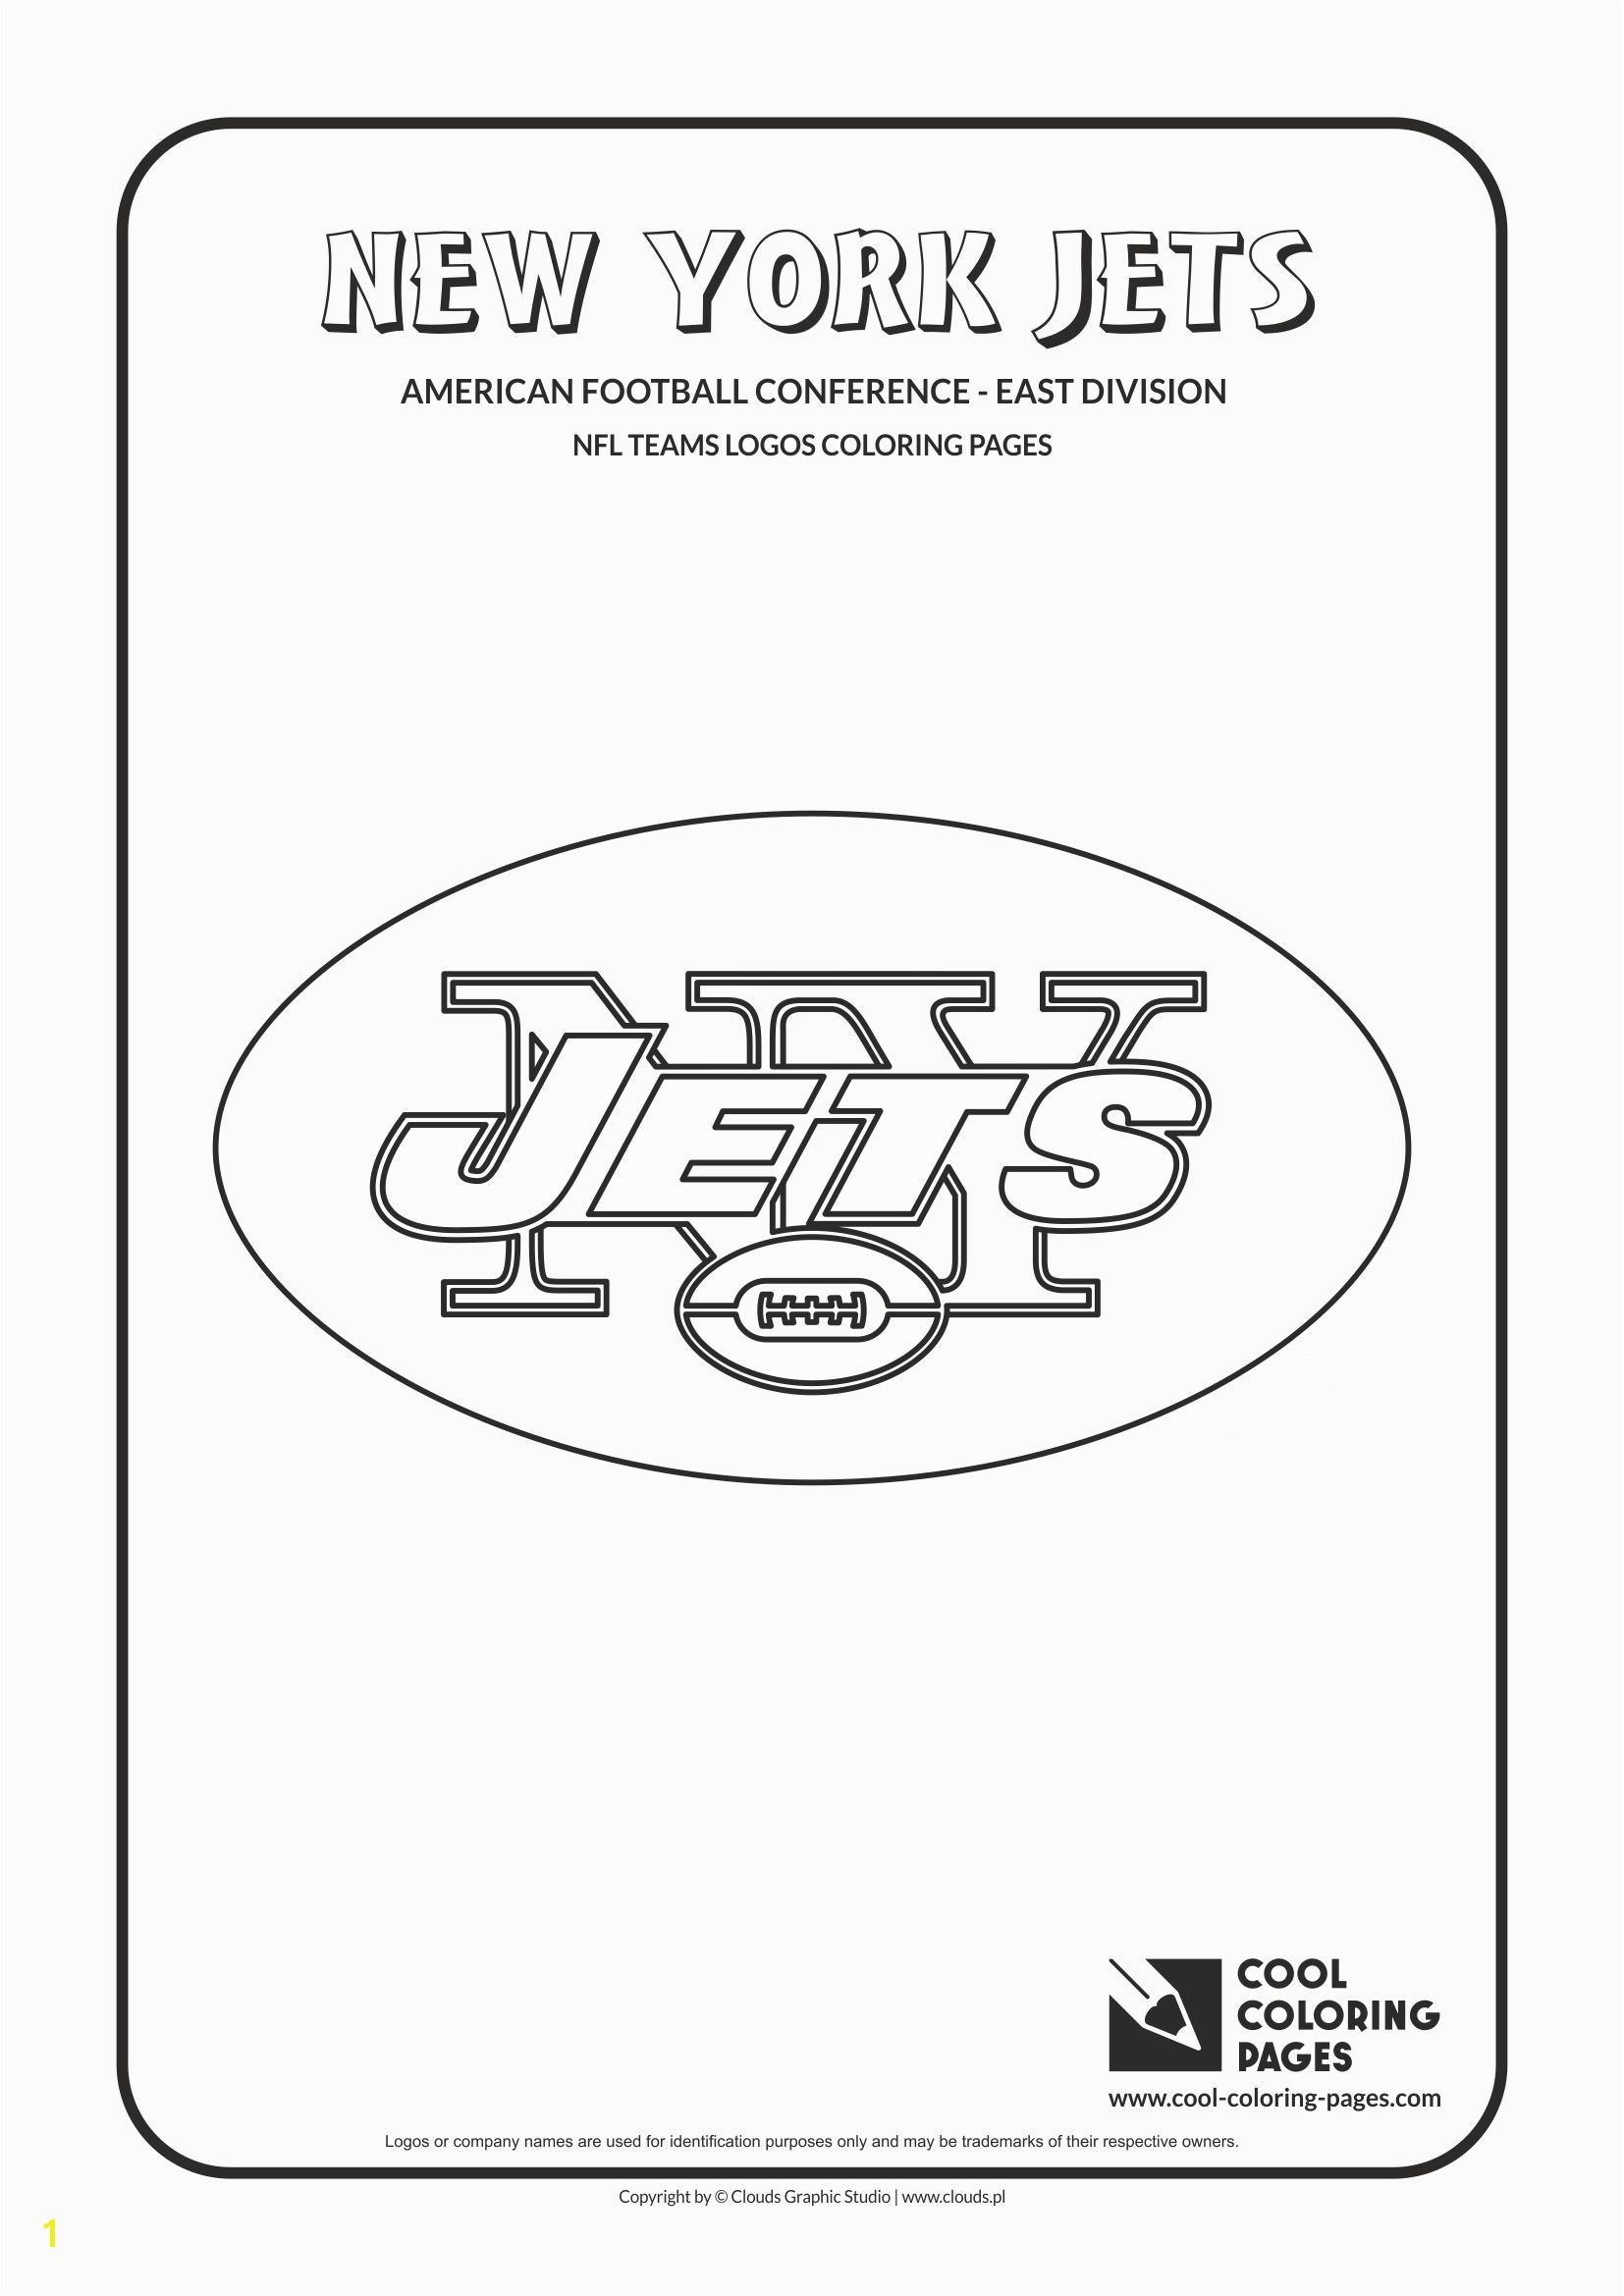 Cool Coloring Pages NFL American Football Clubs Logos American Football Conference East Division